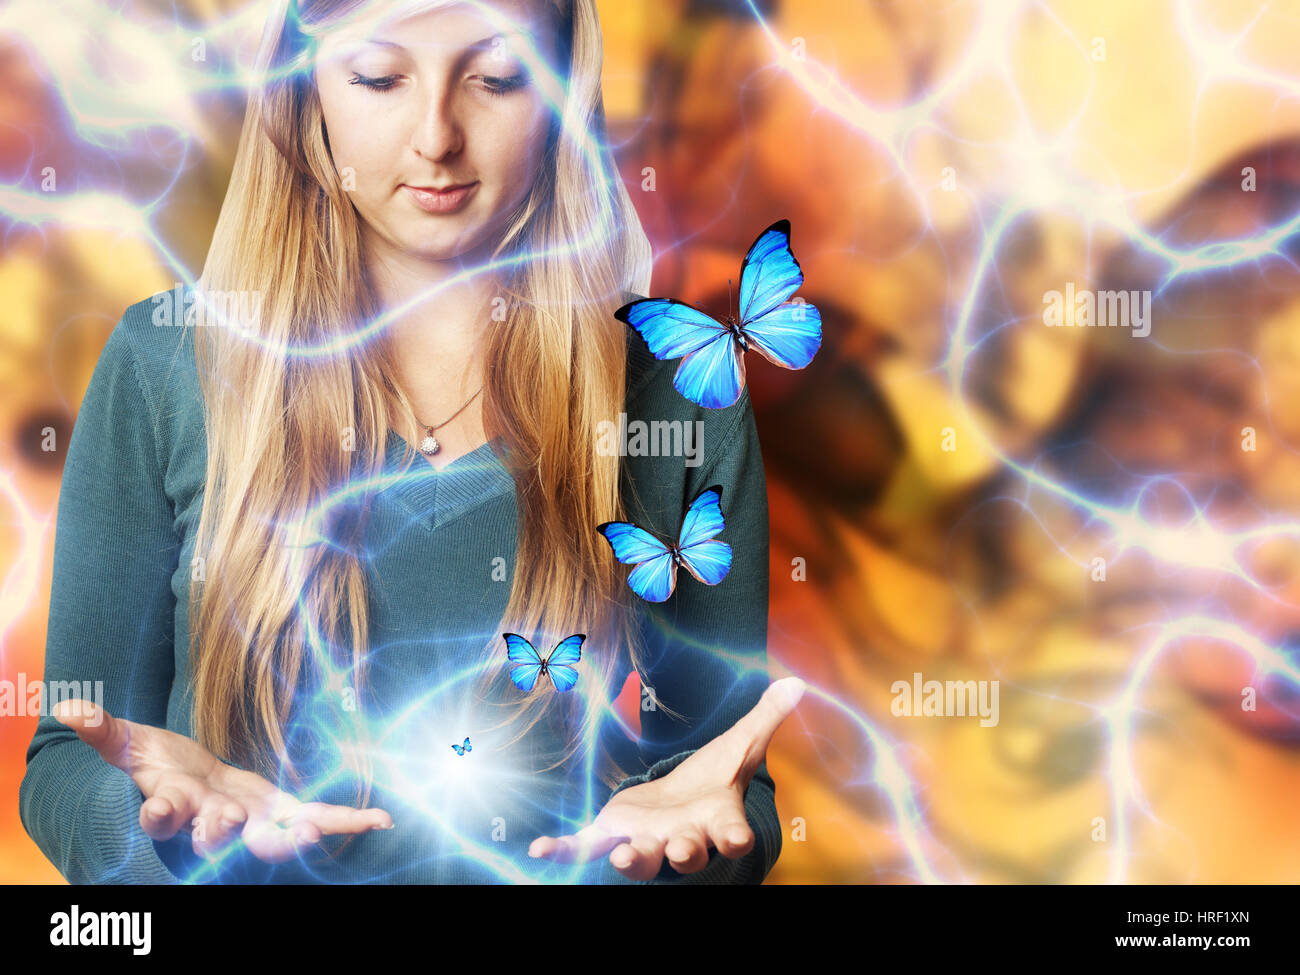 girl with open hands and butterflies flying around, imagination and creativity concept - Stock Image